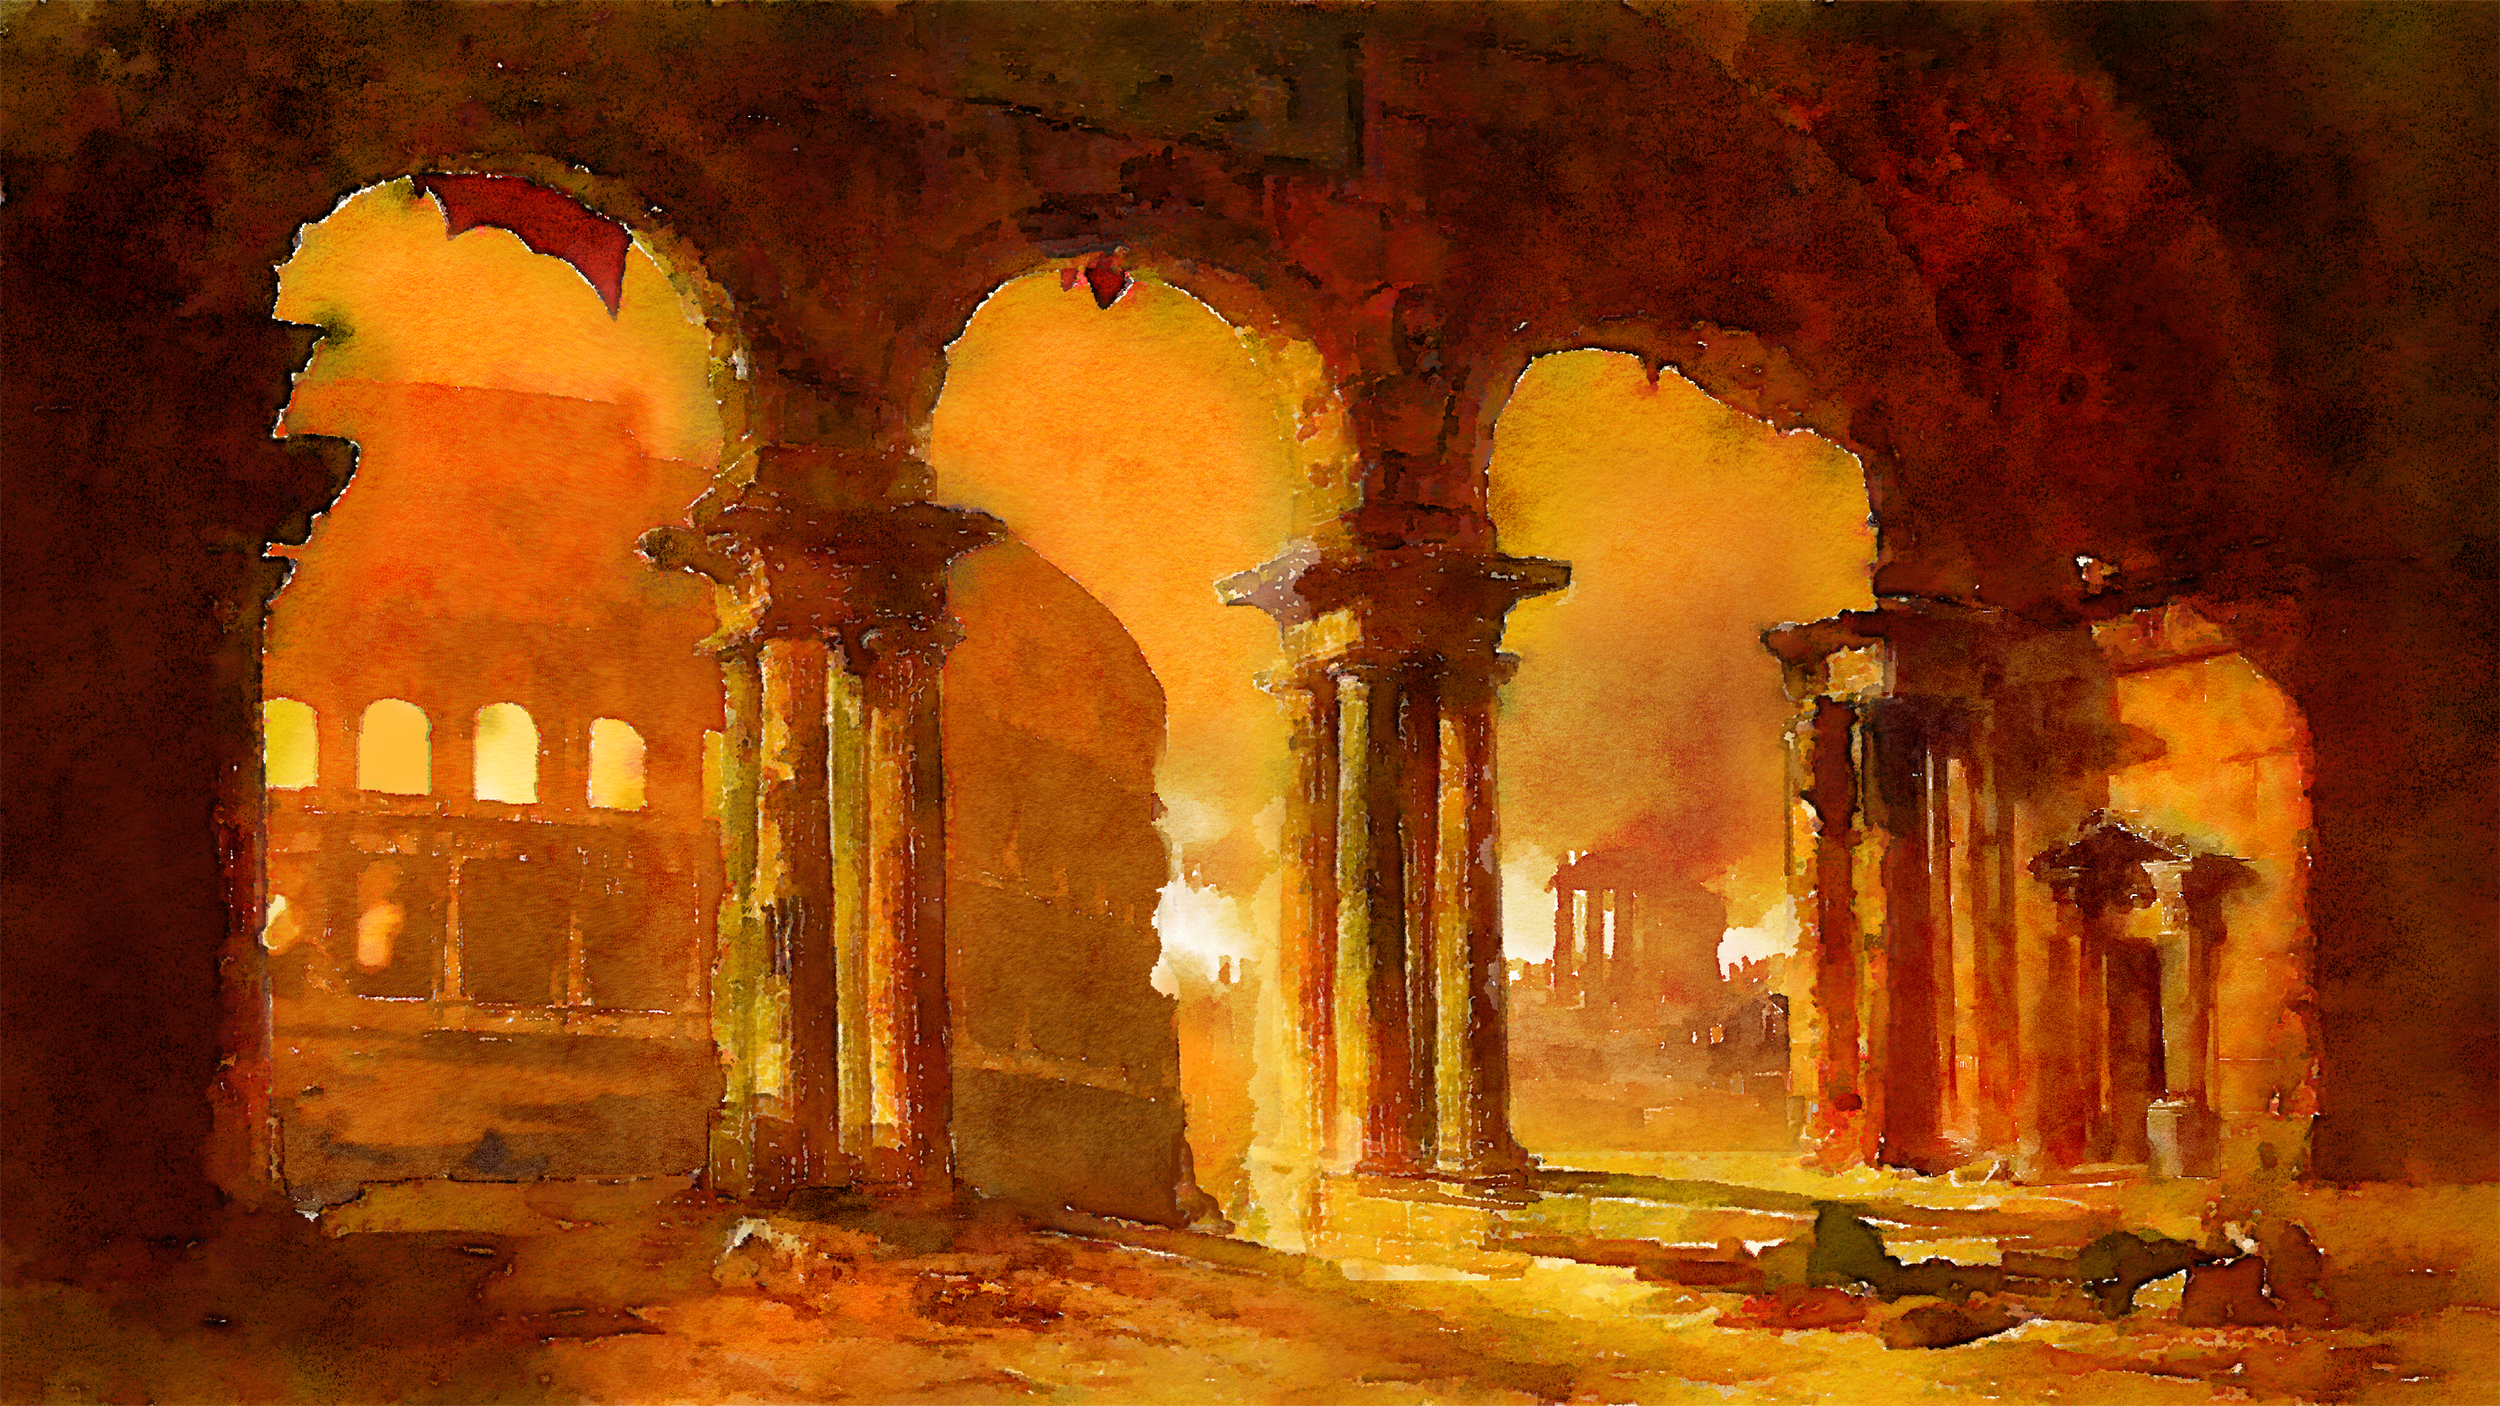 Landscape Painting - Rome is Burning.png